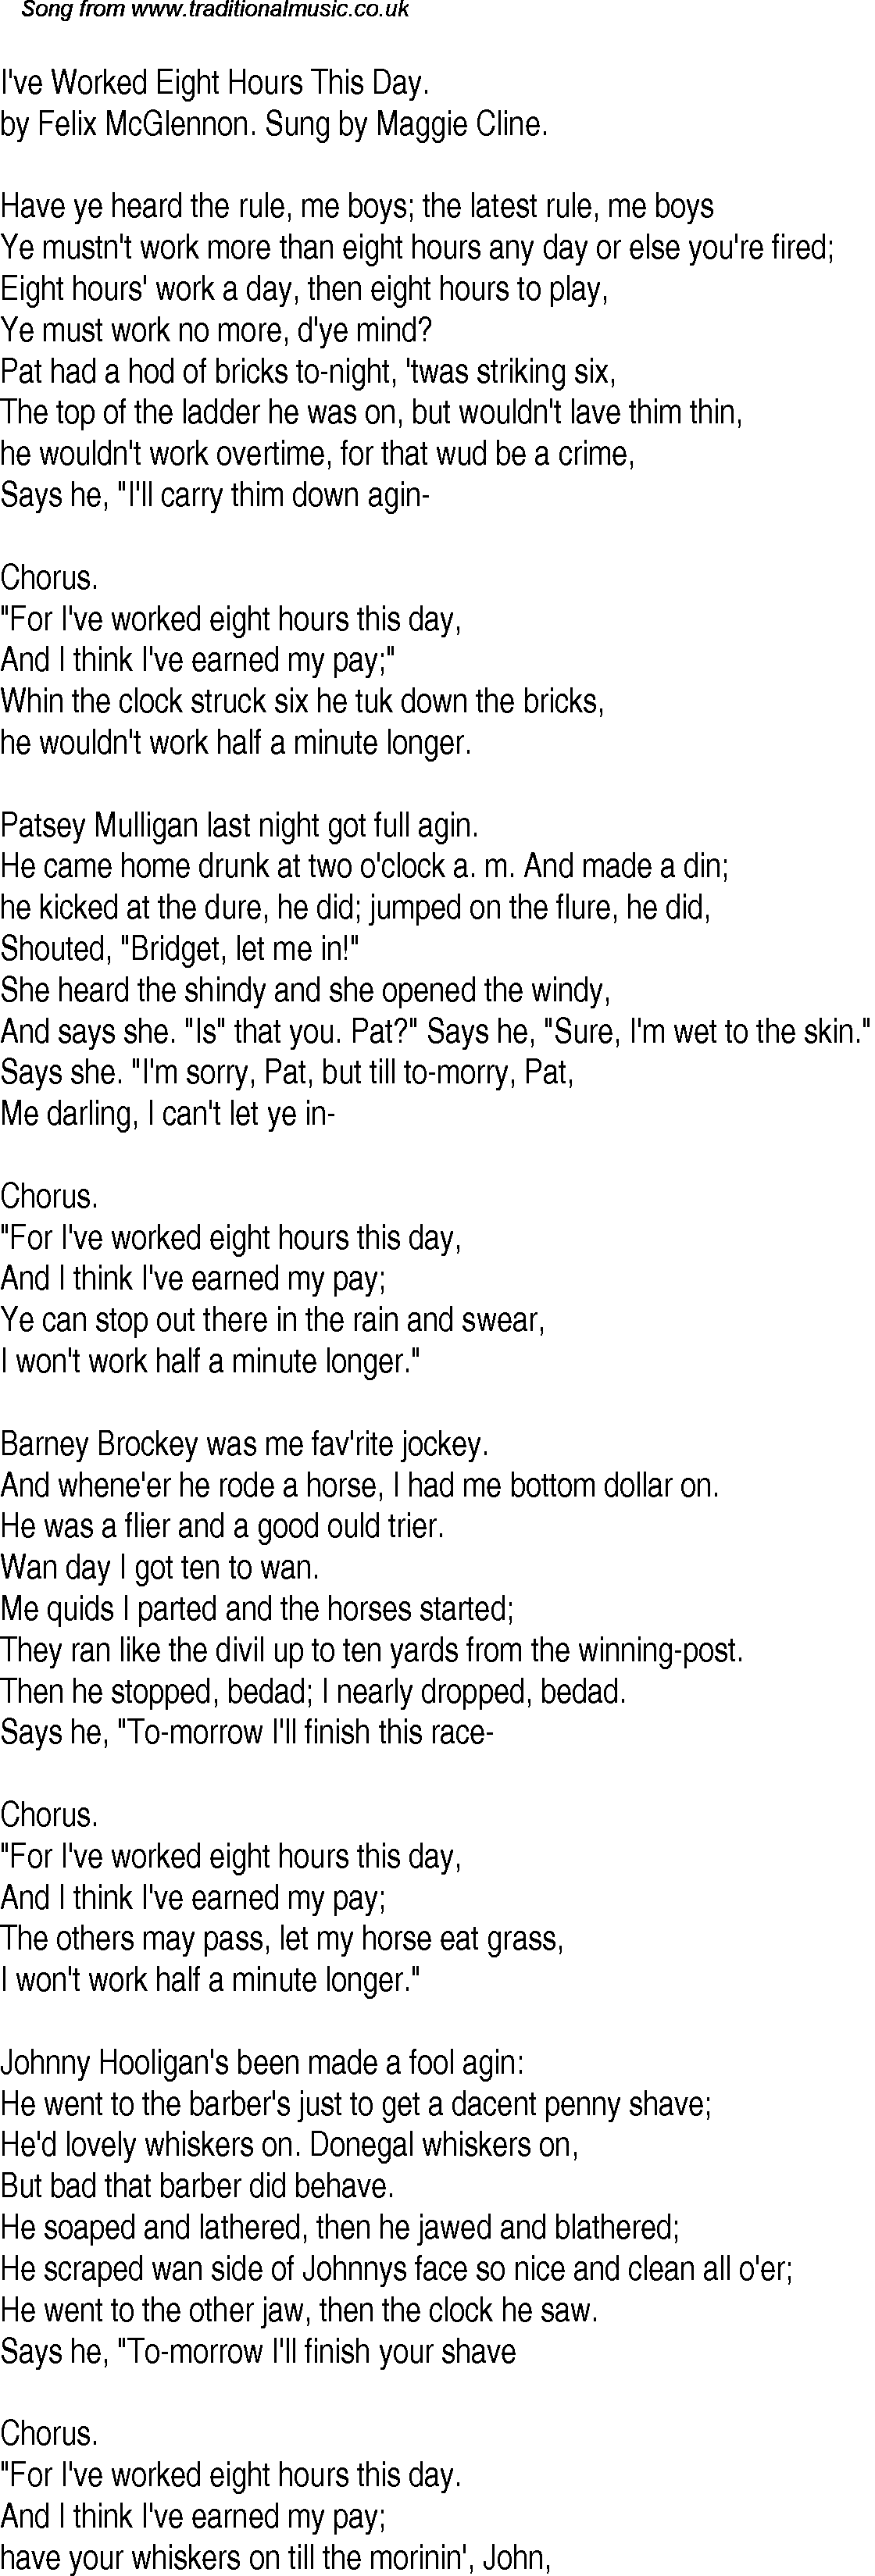 Old Time Song Lyrics for 31 I've Worked Eight Hours This Day